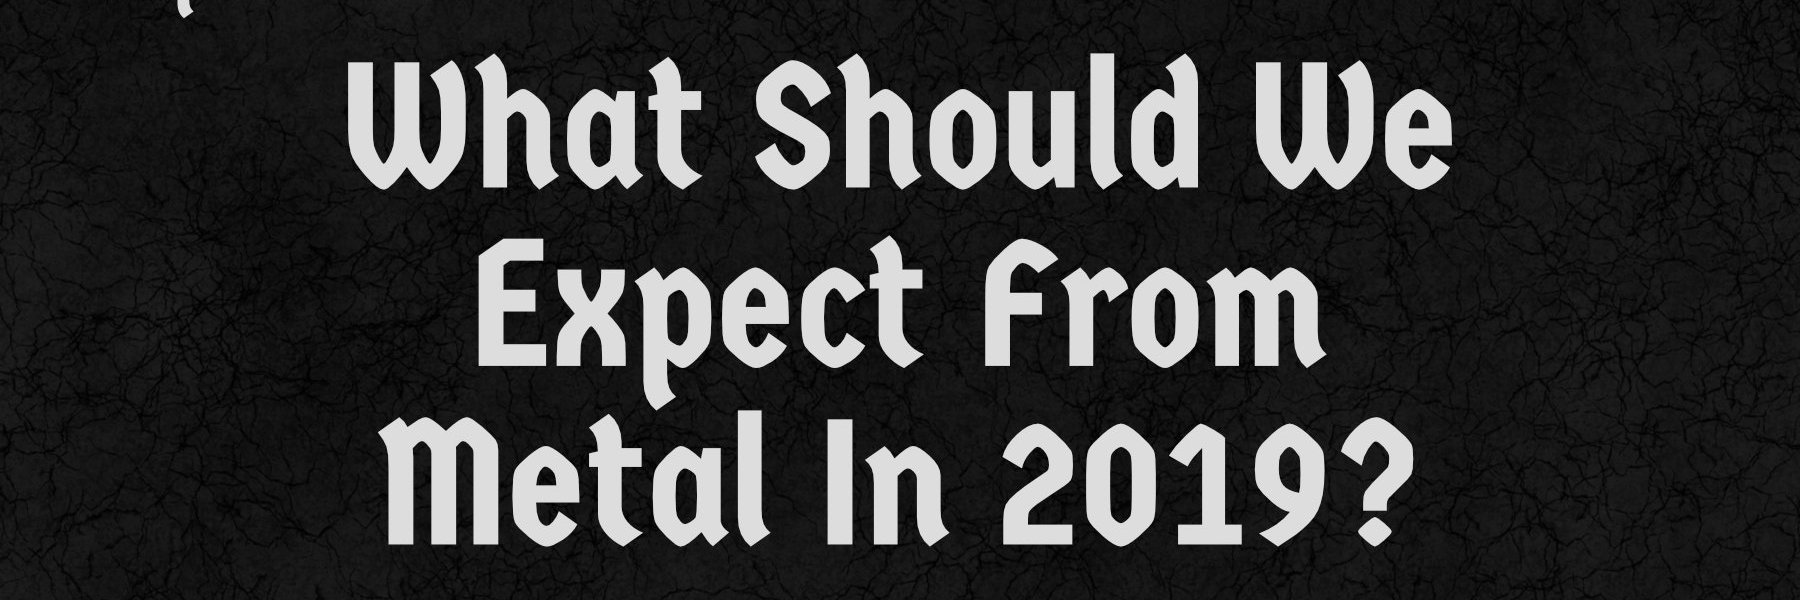 What Should We Expect From Metal In 2019?